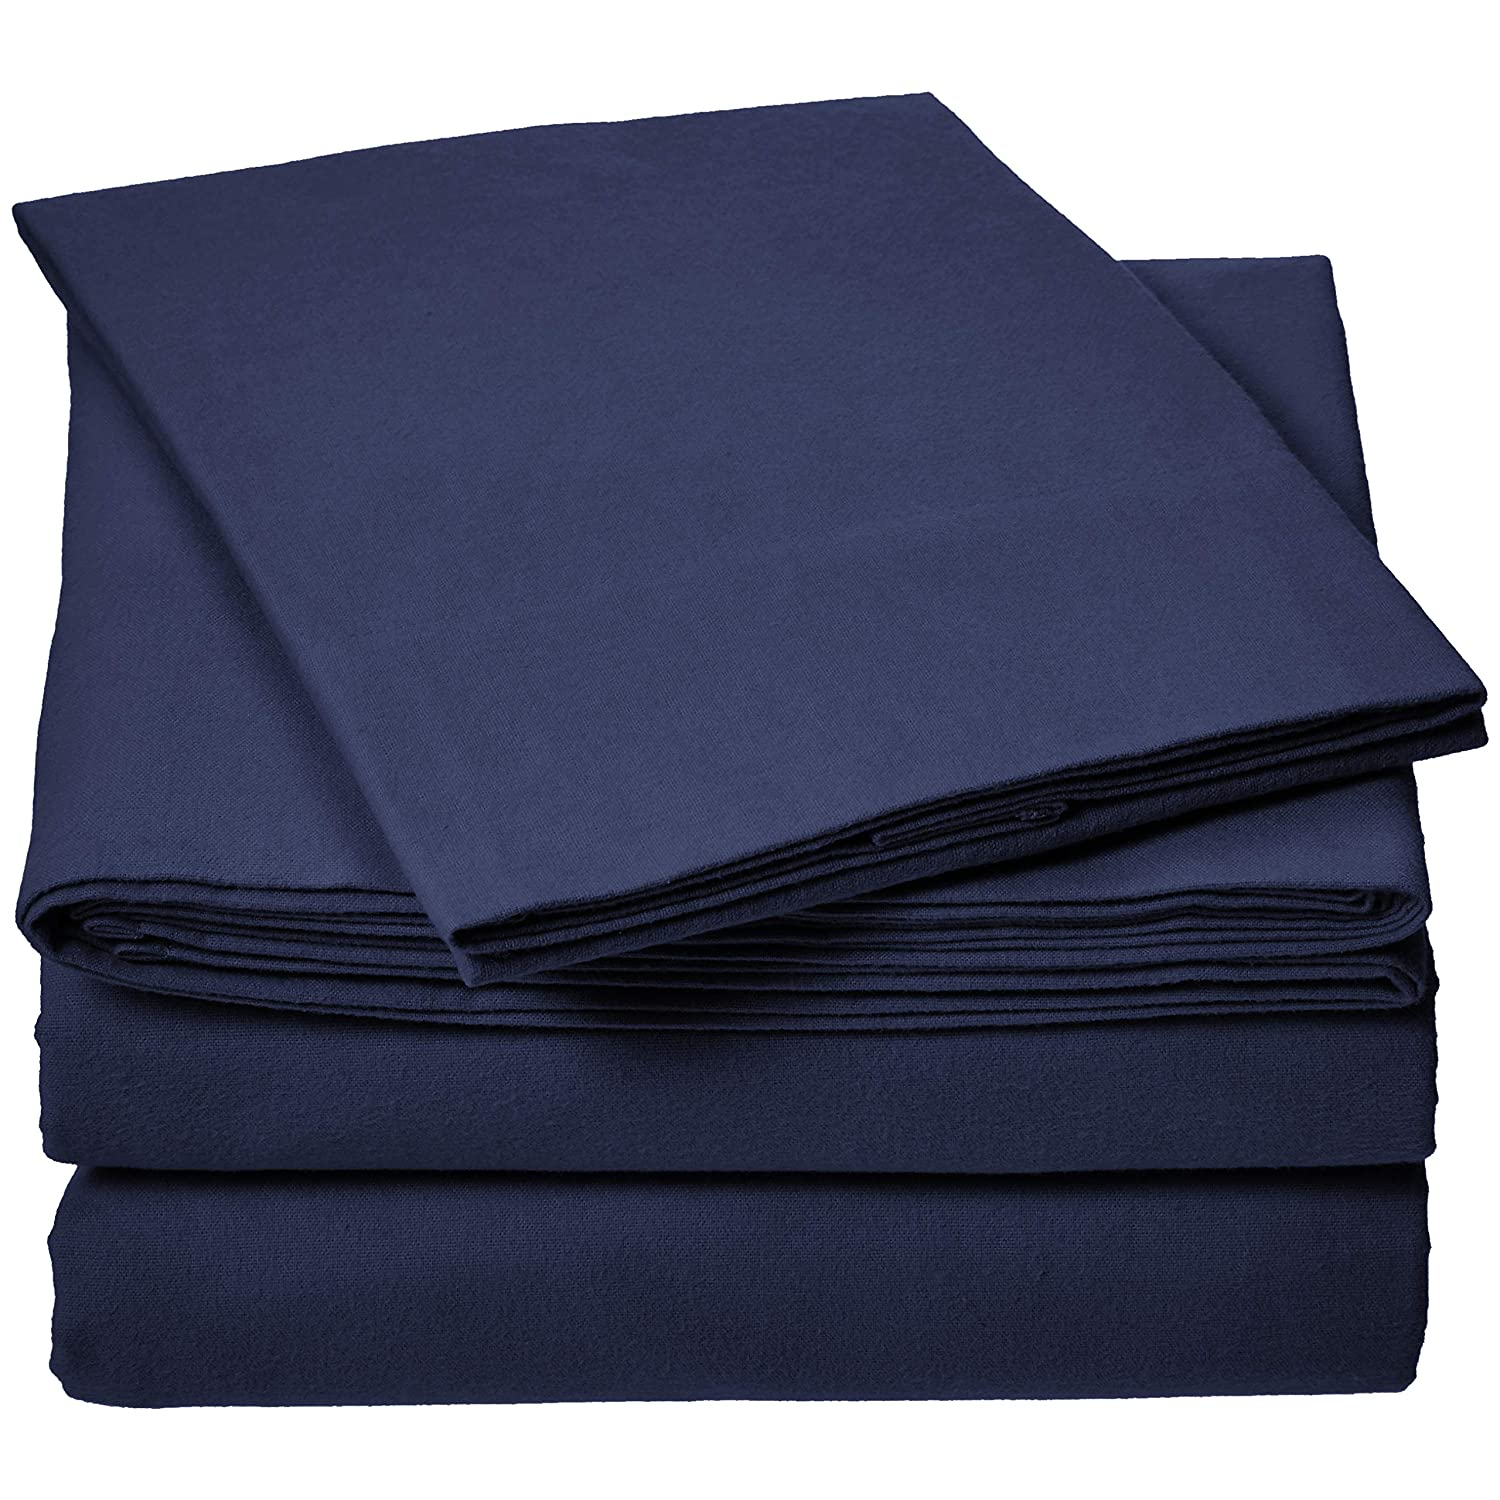 AmazonBasics Everyday Flannel Sheet Set - Navy, Twin